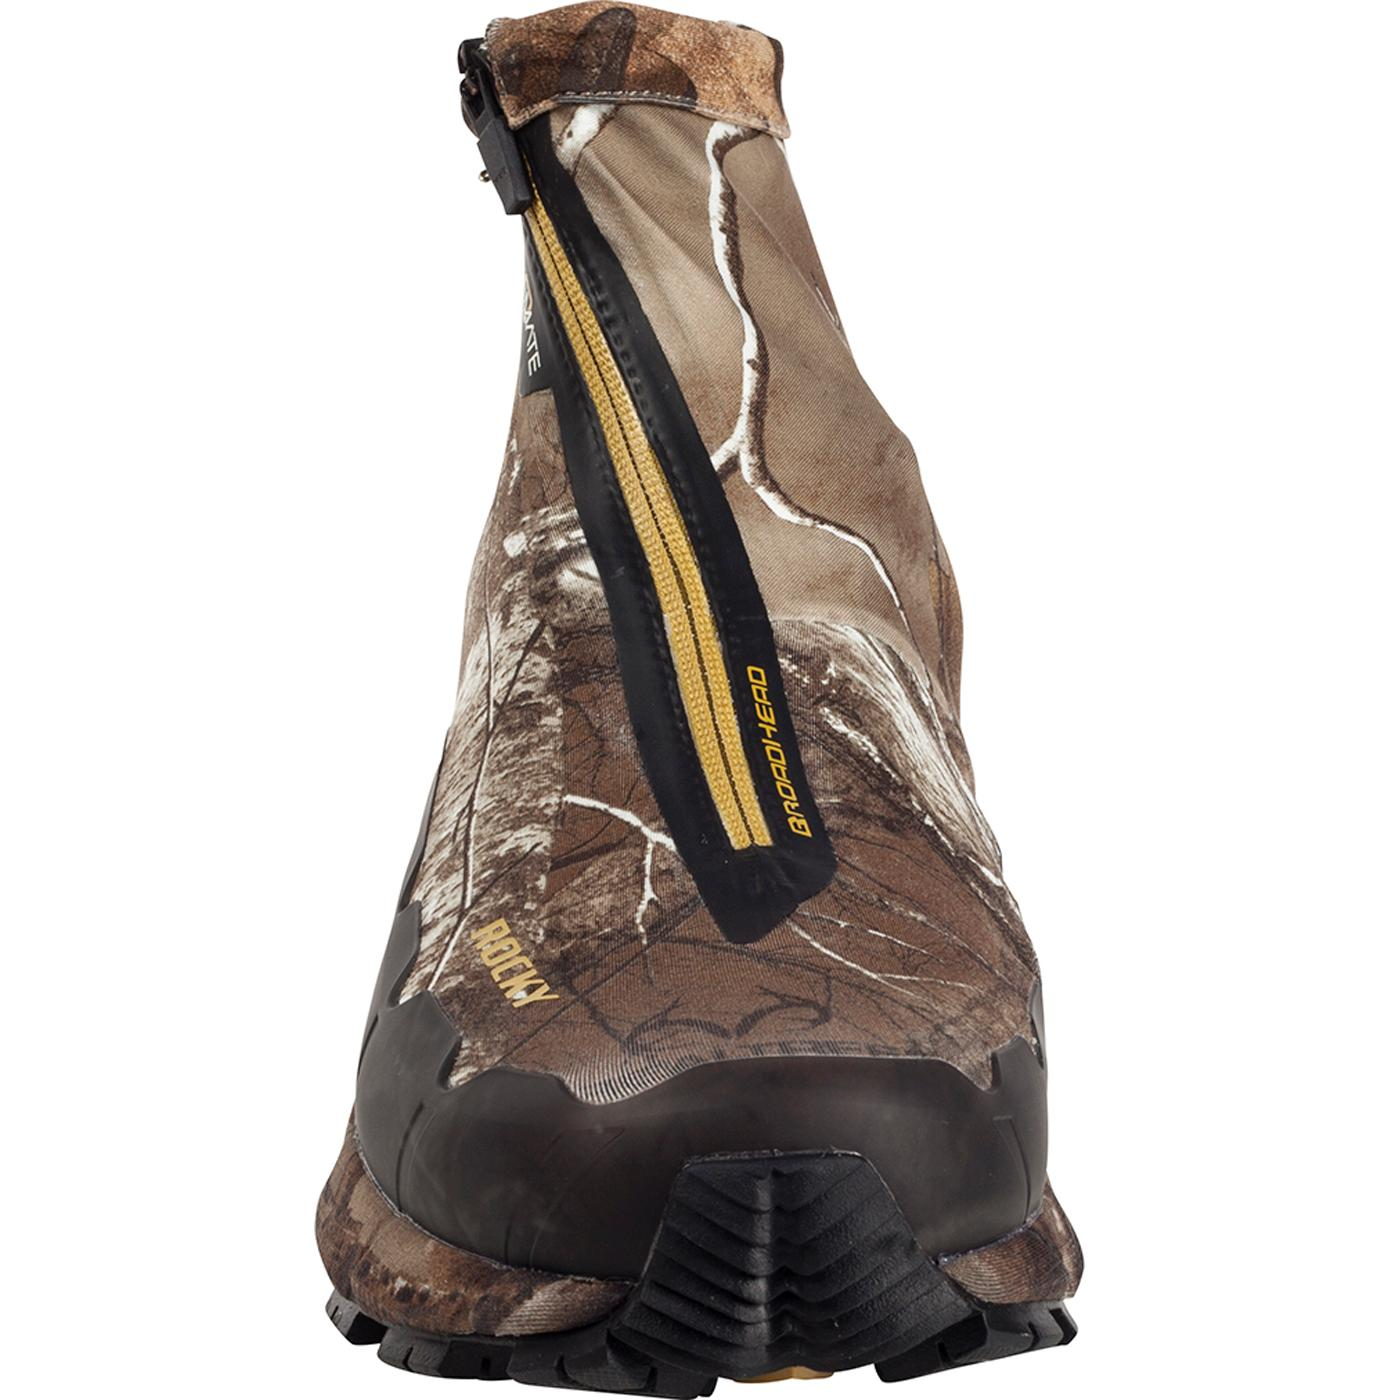 Rocky Broadhead Realtree Athletic Hunting Hiking Shoes